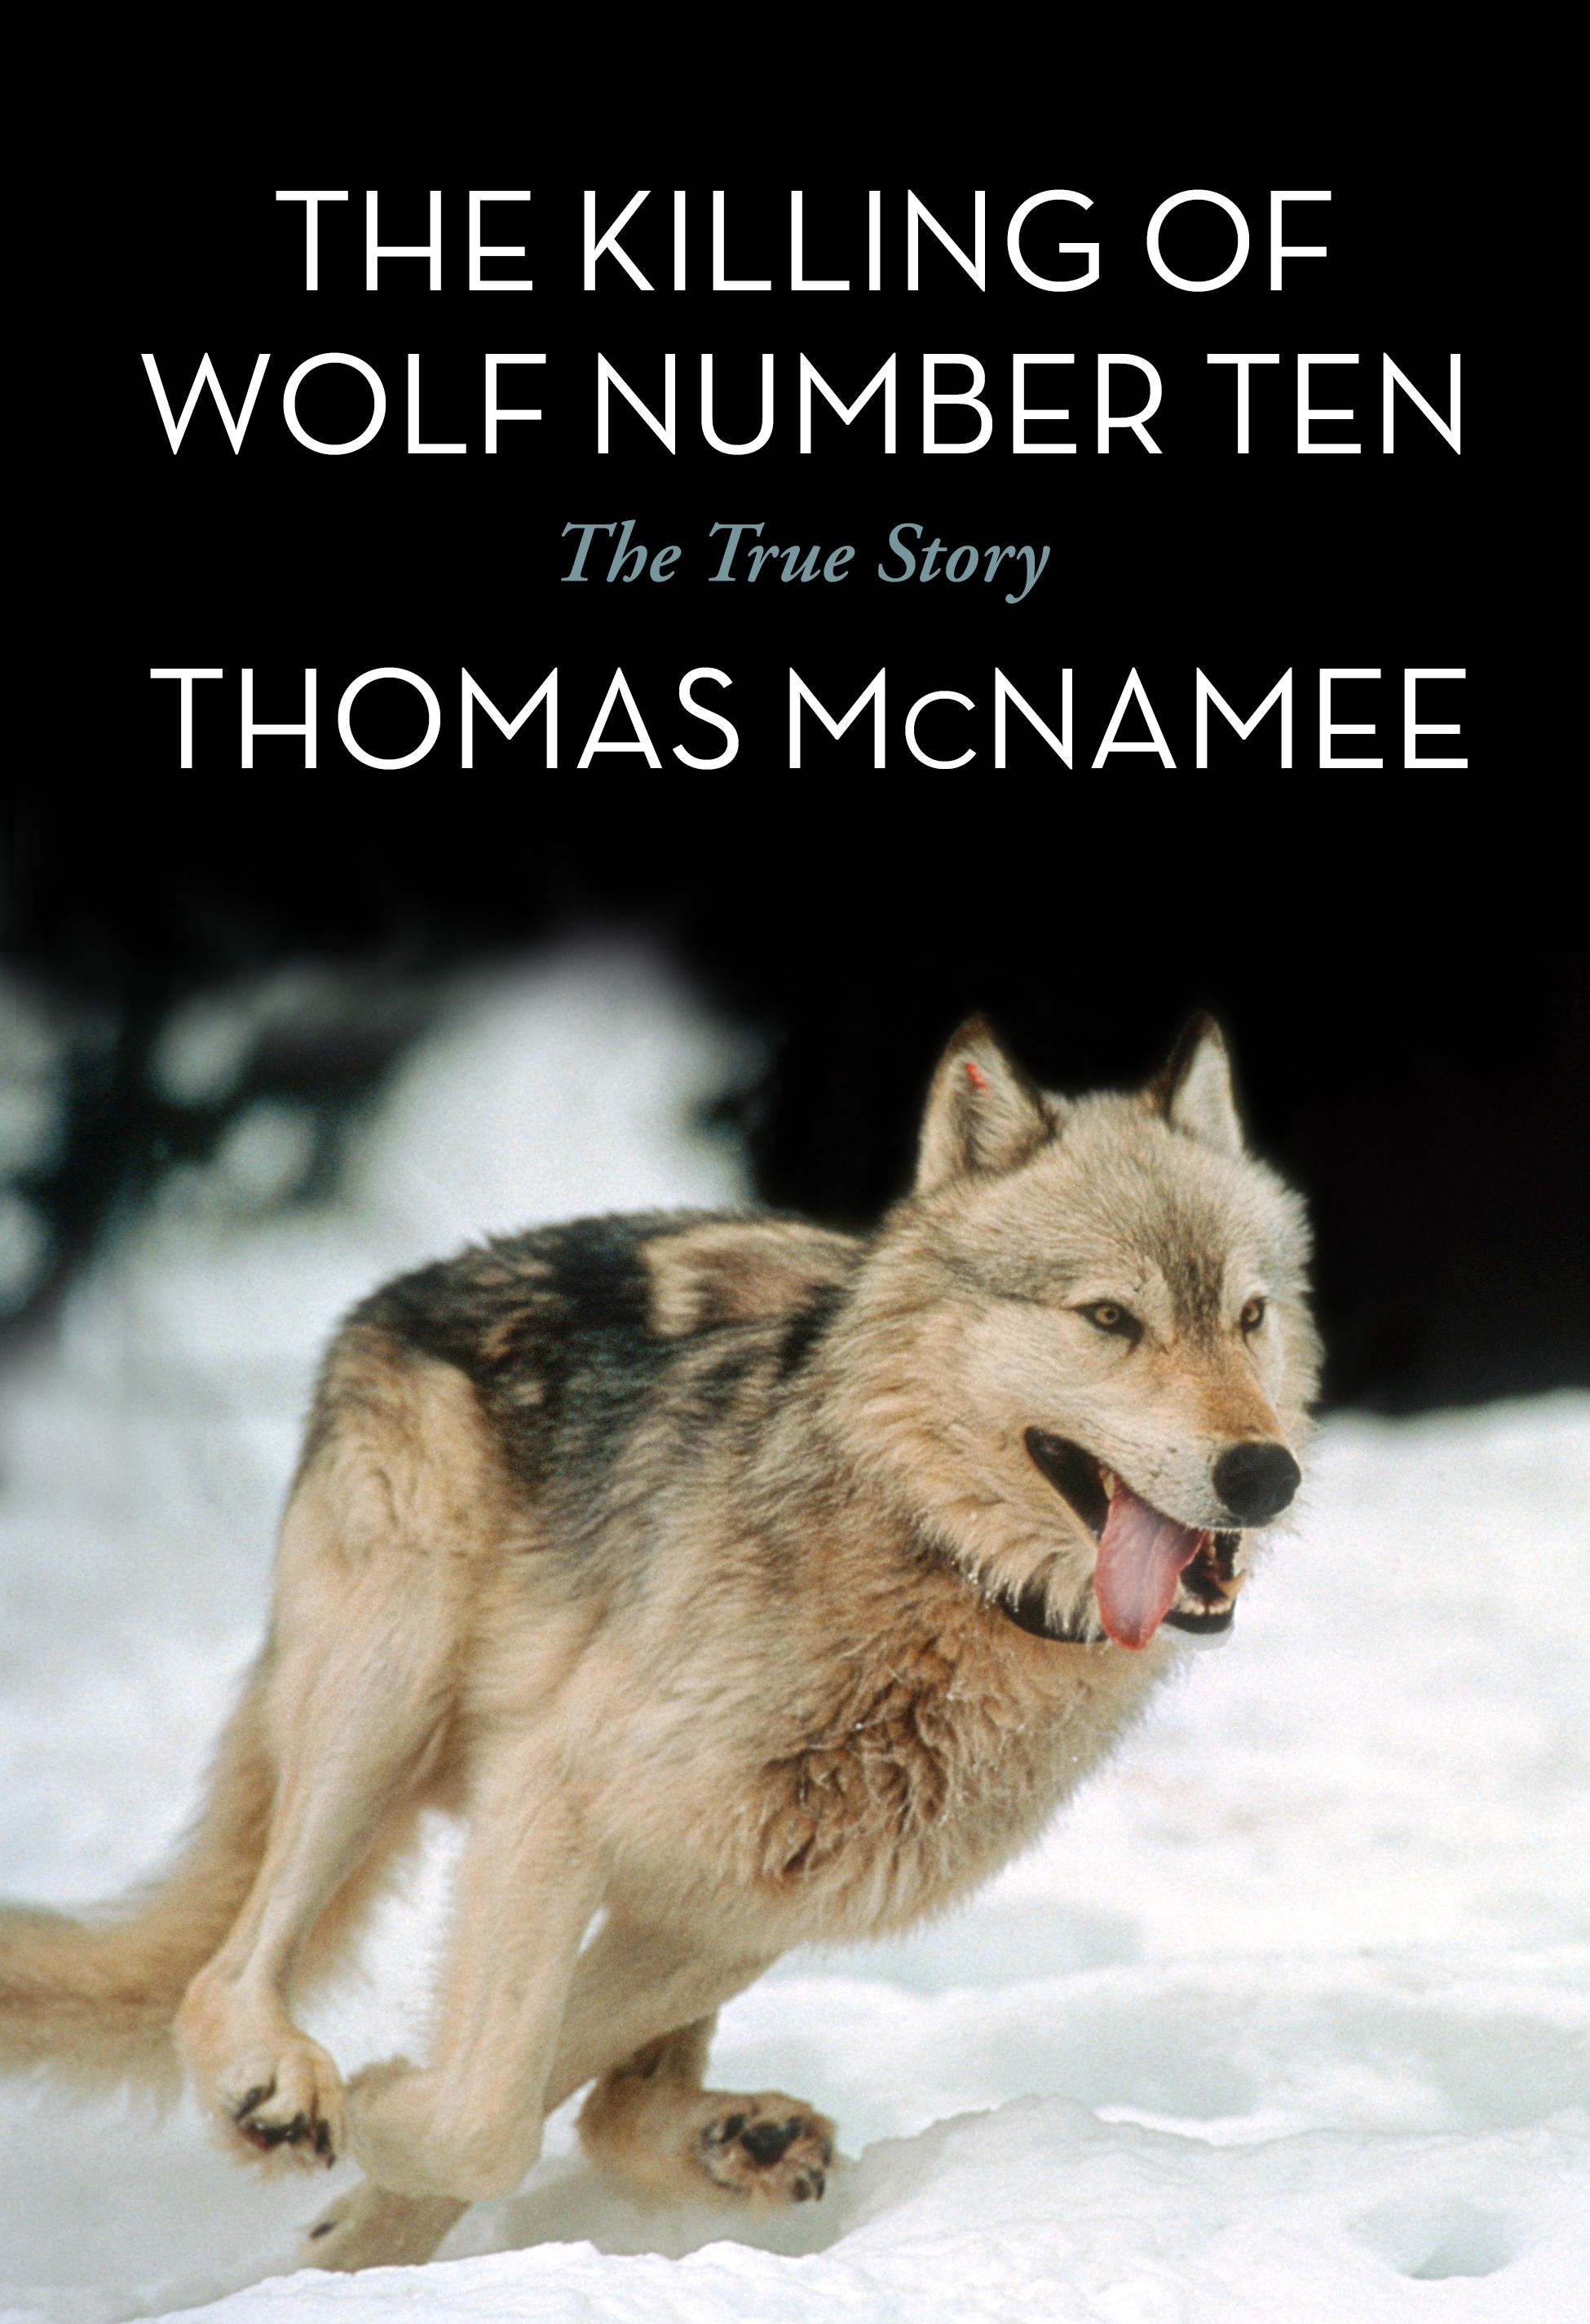 Fiction nonfiction books prospecta press prospecta press the killing of wolf number ten the true story by thomas mcnamee paperback 144 pages with over 50 bw photographs and charts fandeluxe